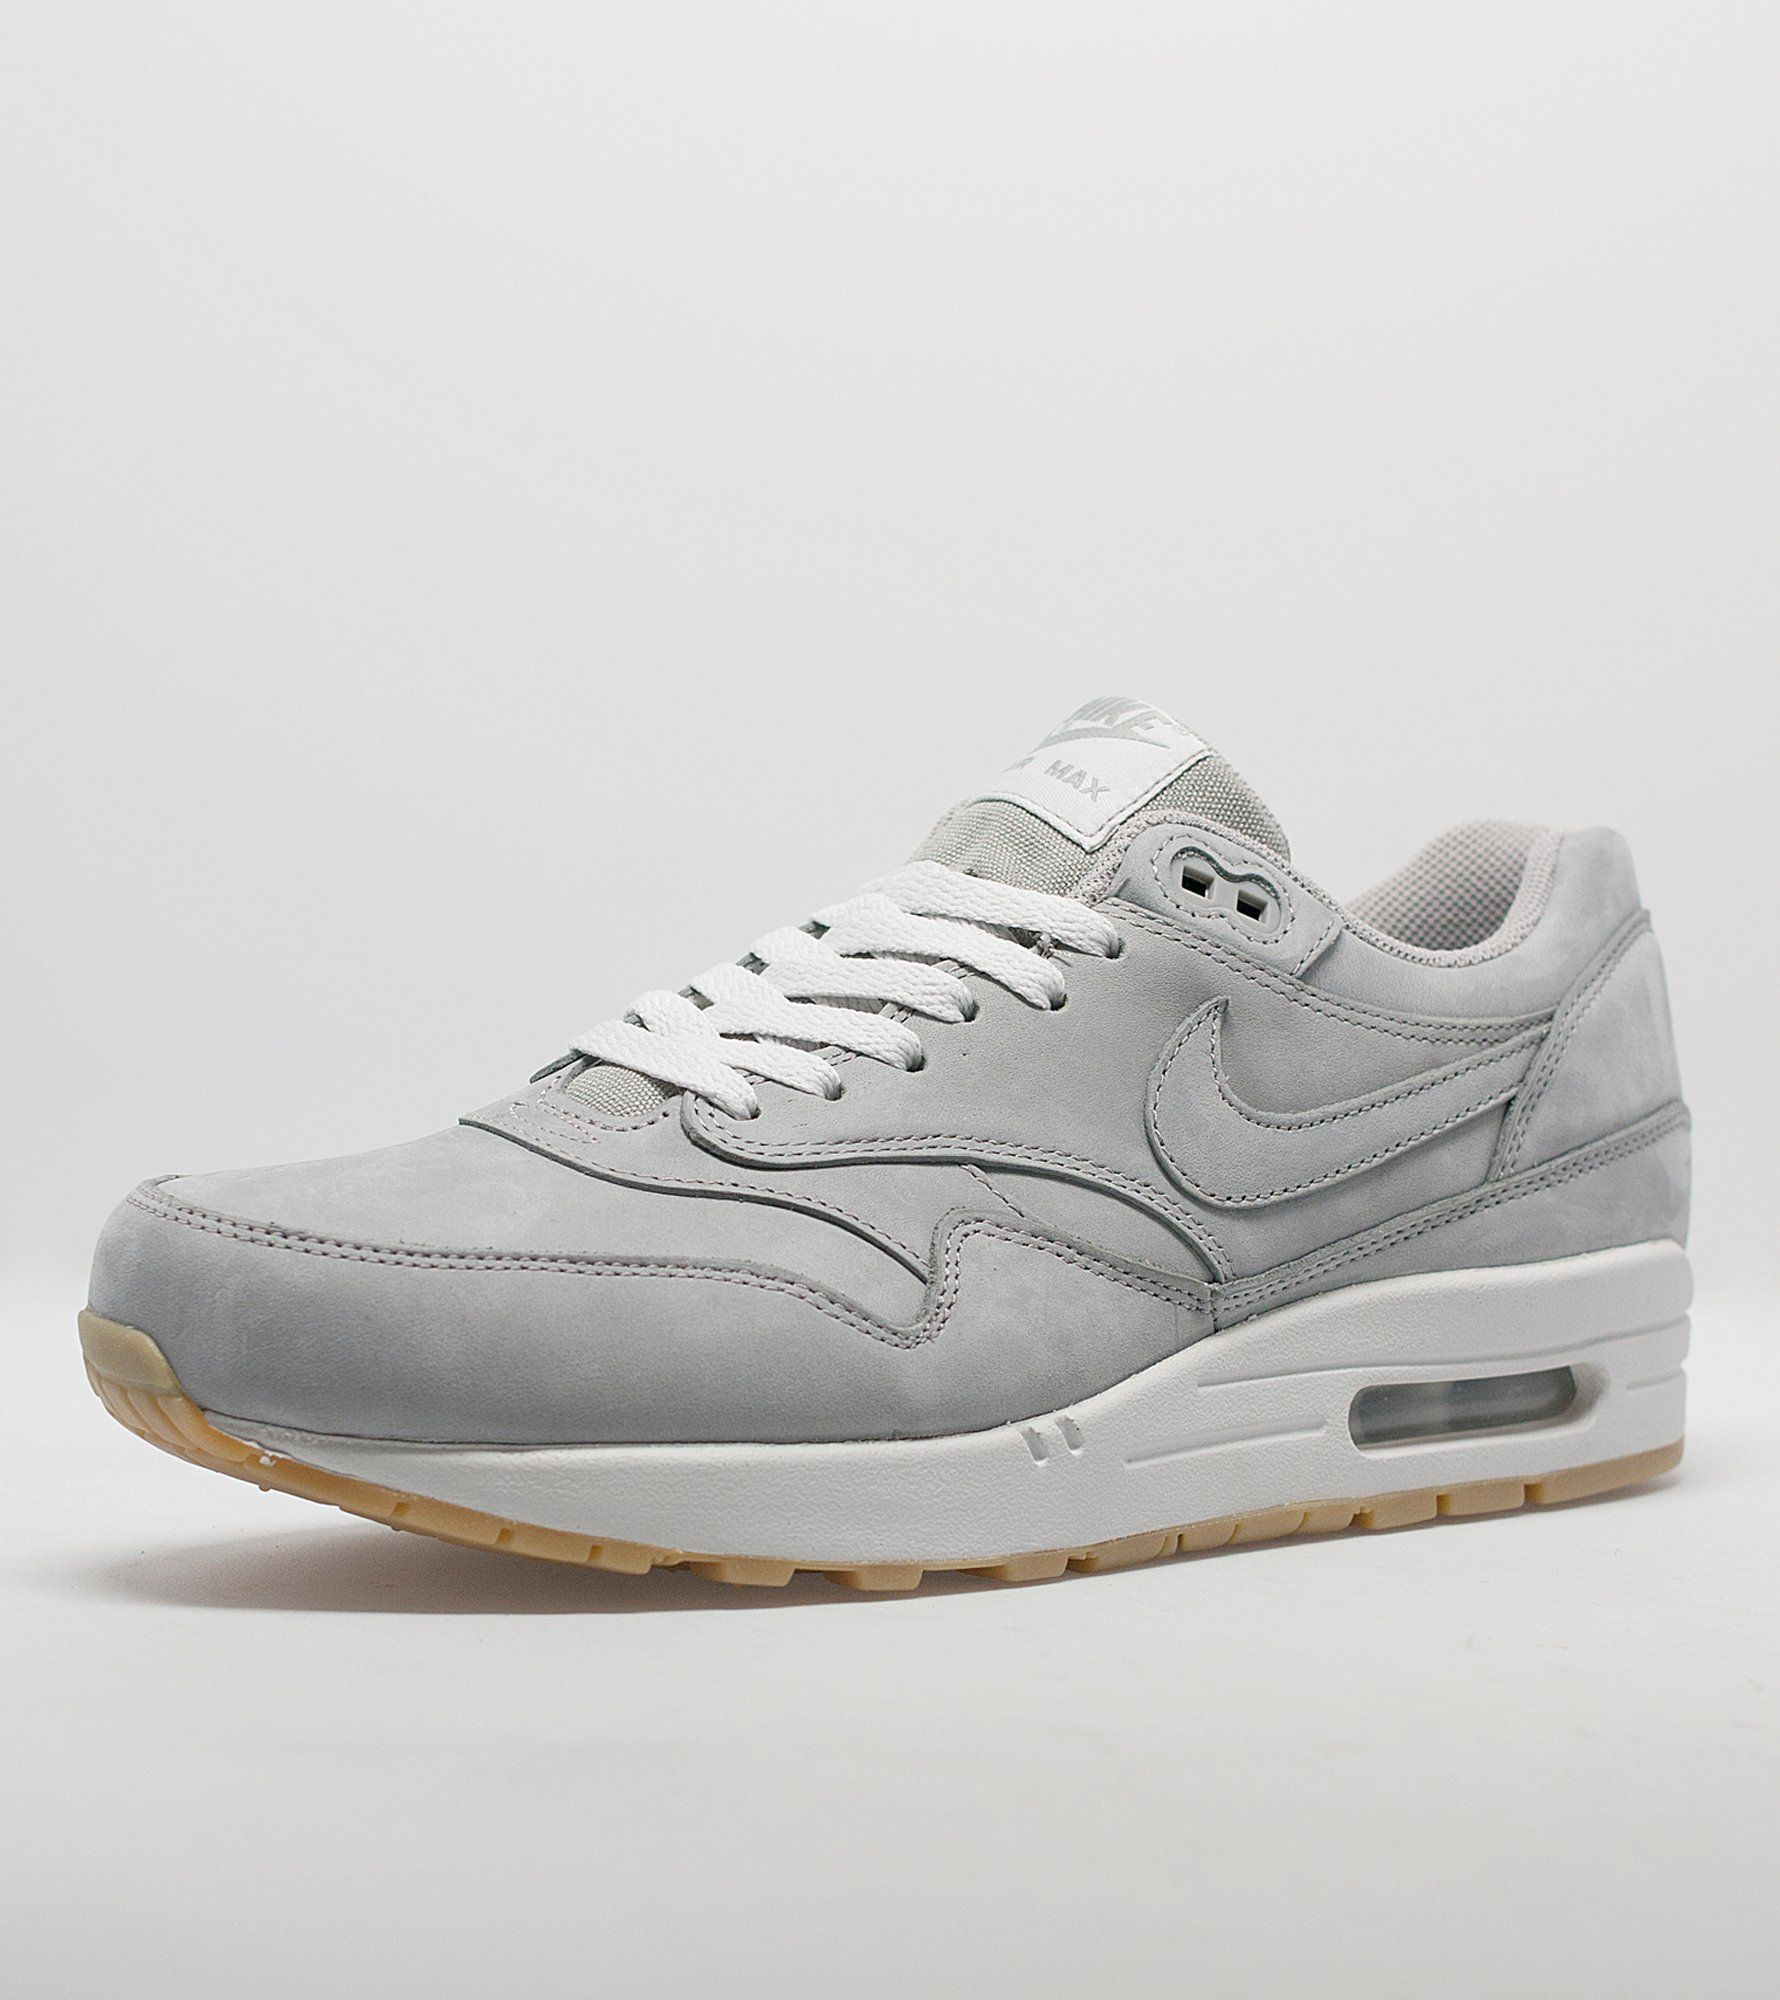 wholesale dealer d2437 969fa Nike Air Max 1 Leather Premium   Size